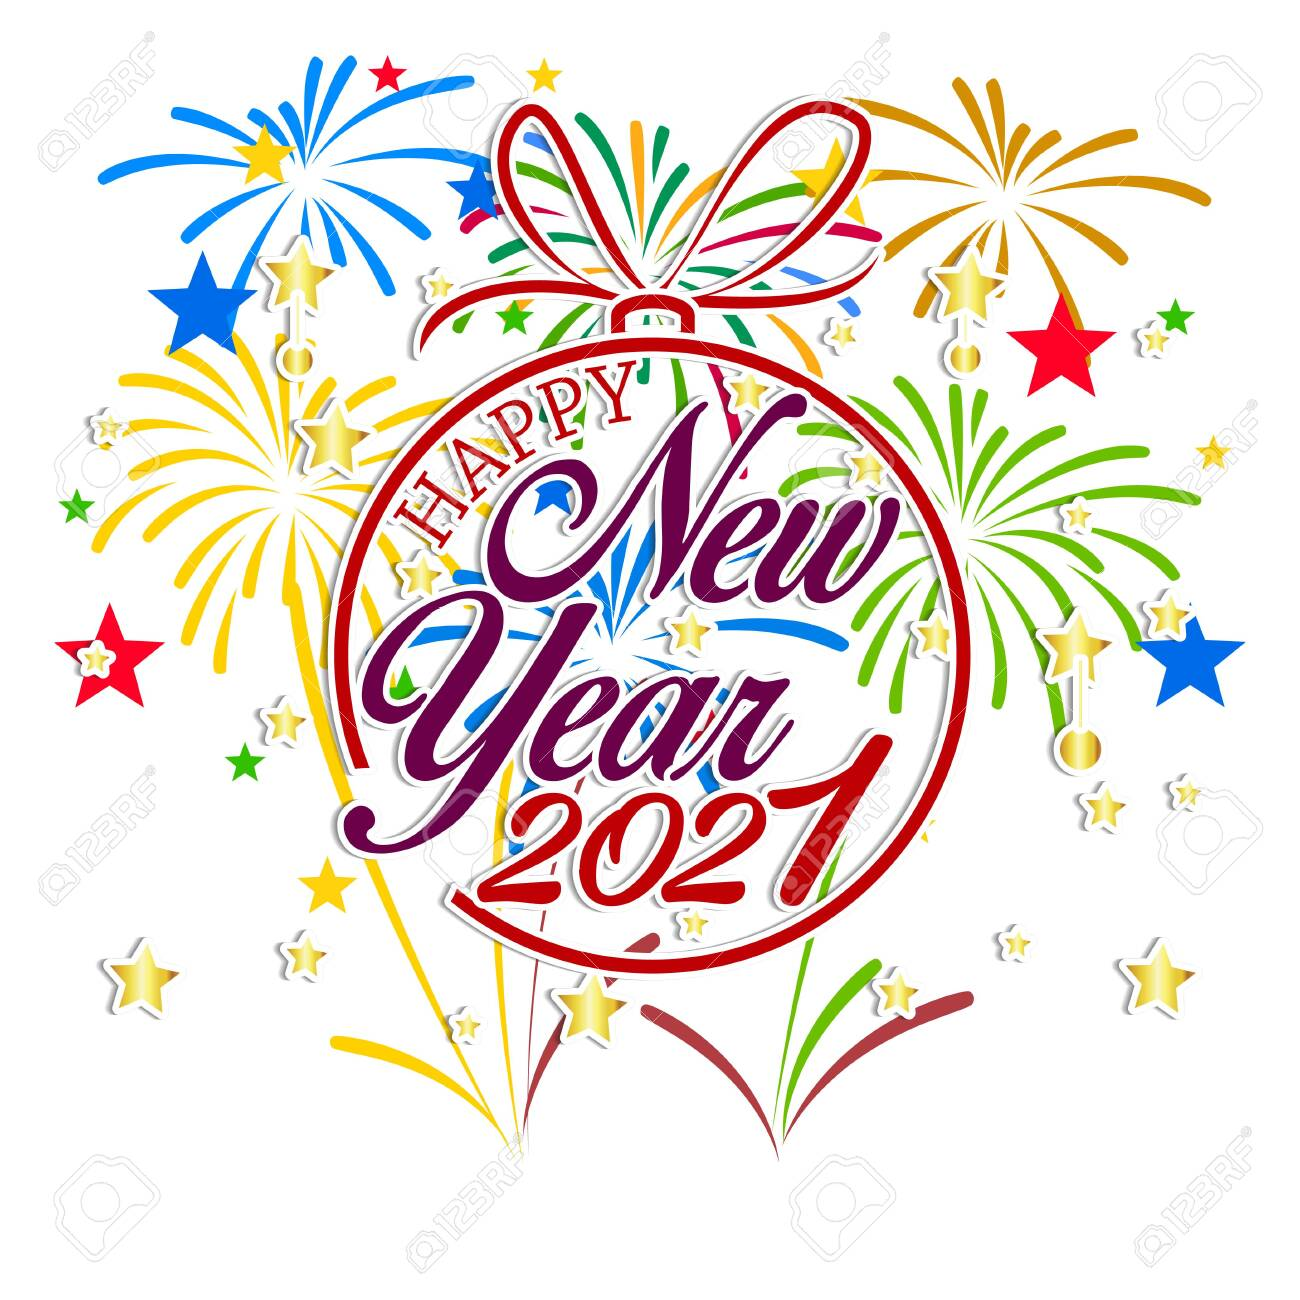 Happy New Year 2021 With Firework Background. Firework Display.. Royalty  Free Cliparts, Vectors, And Stock Illustration. Image 136894850.